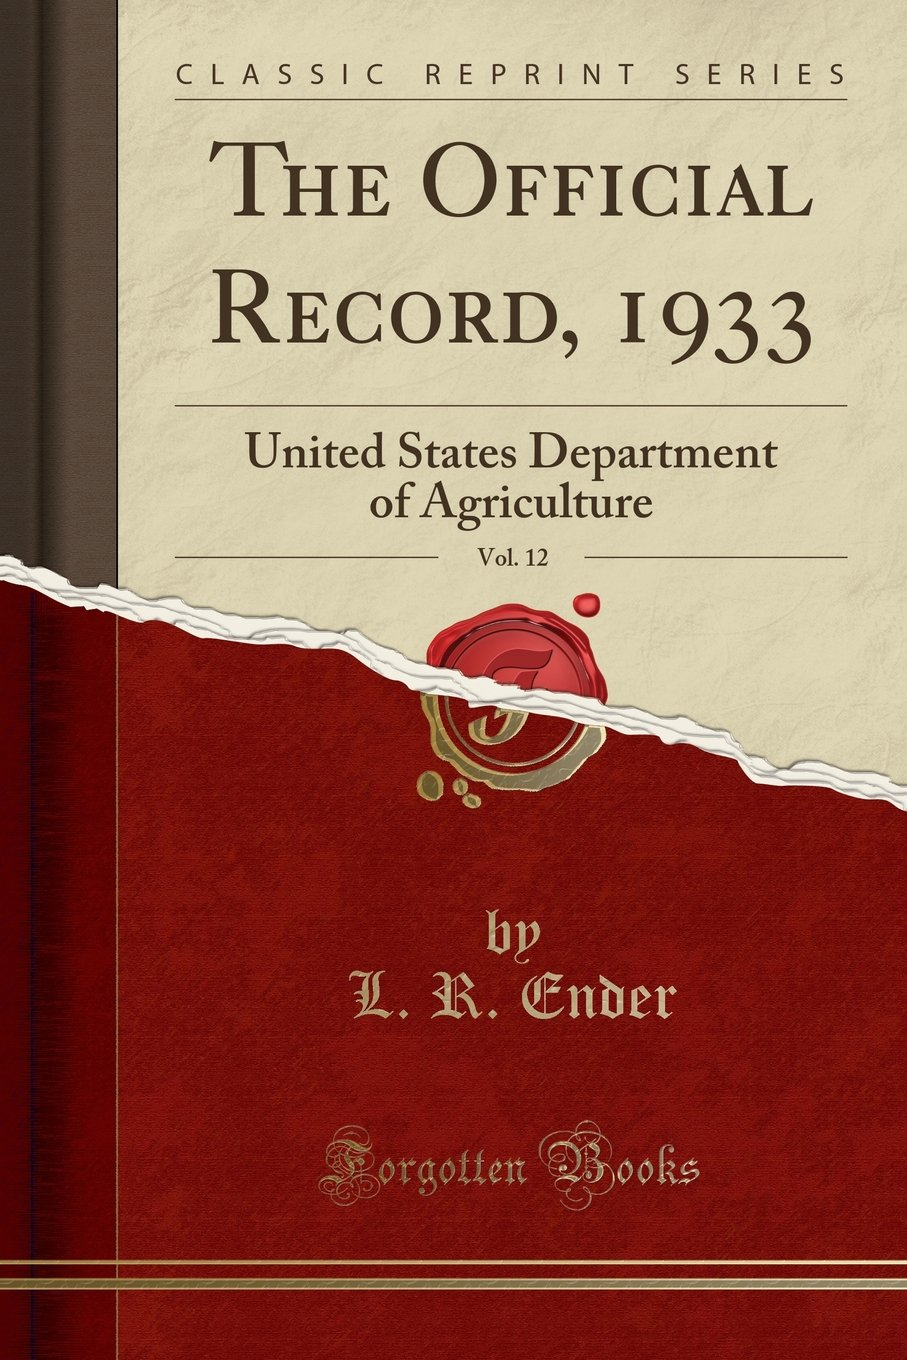 The Official Record, 1933, Vol. 12: United States Department of Agriculture (Classic Reprint) pdf epub